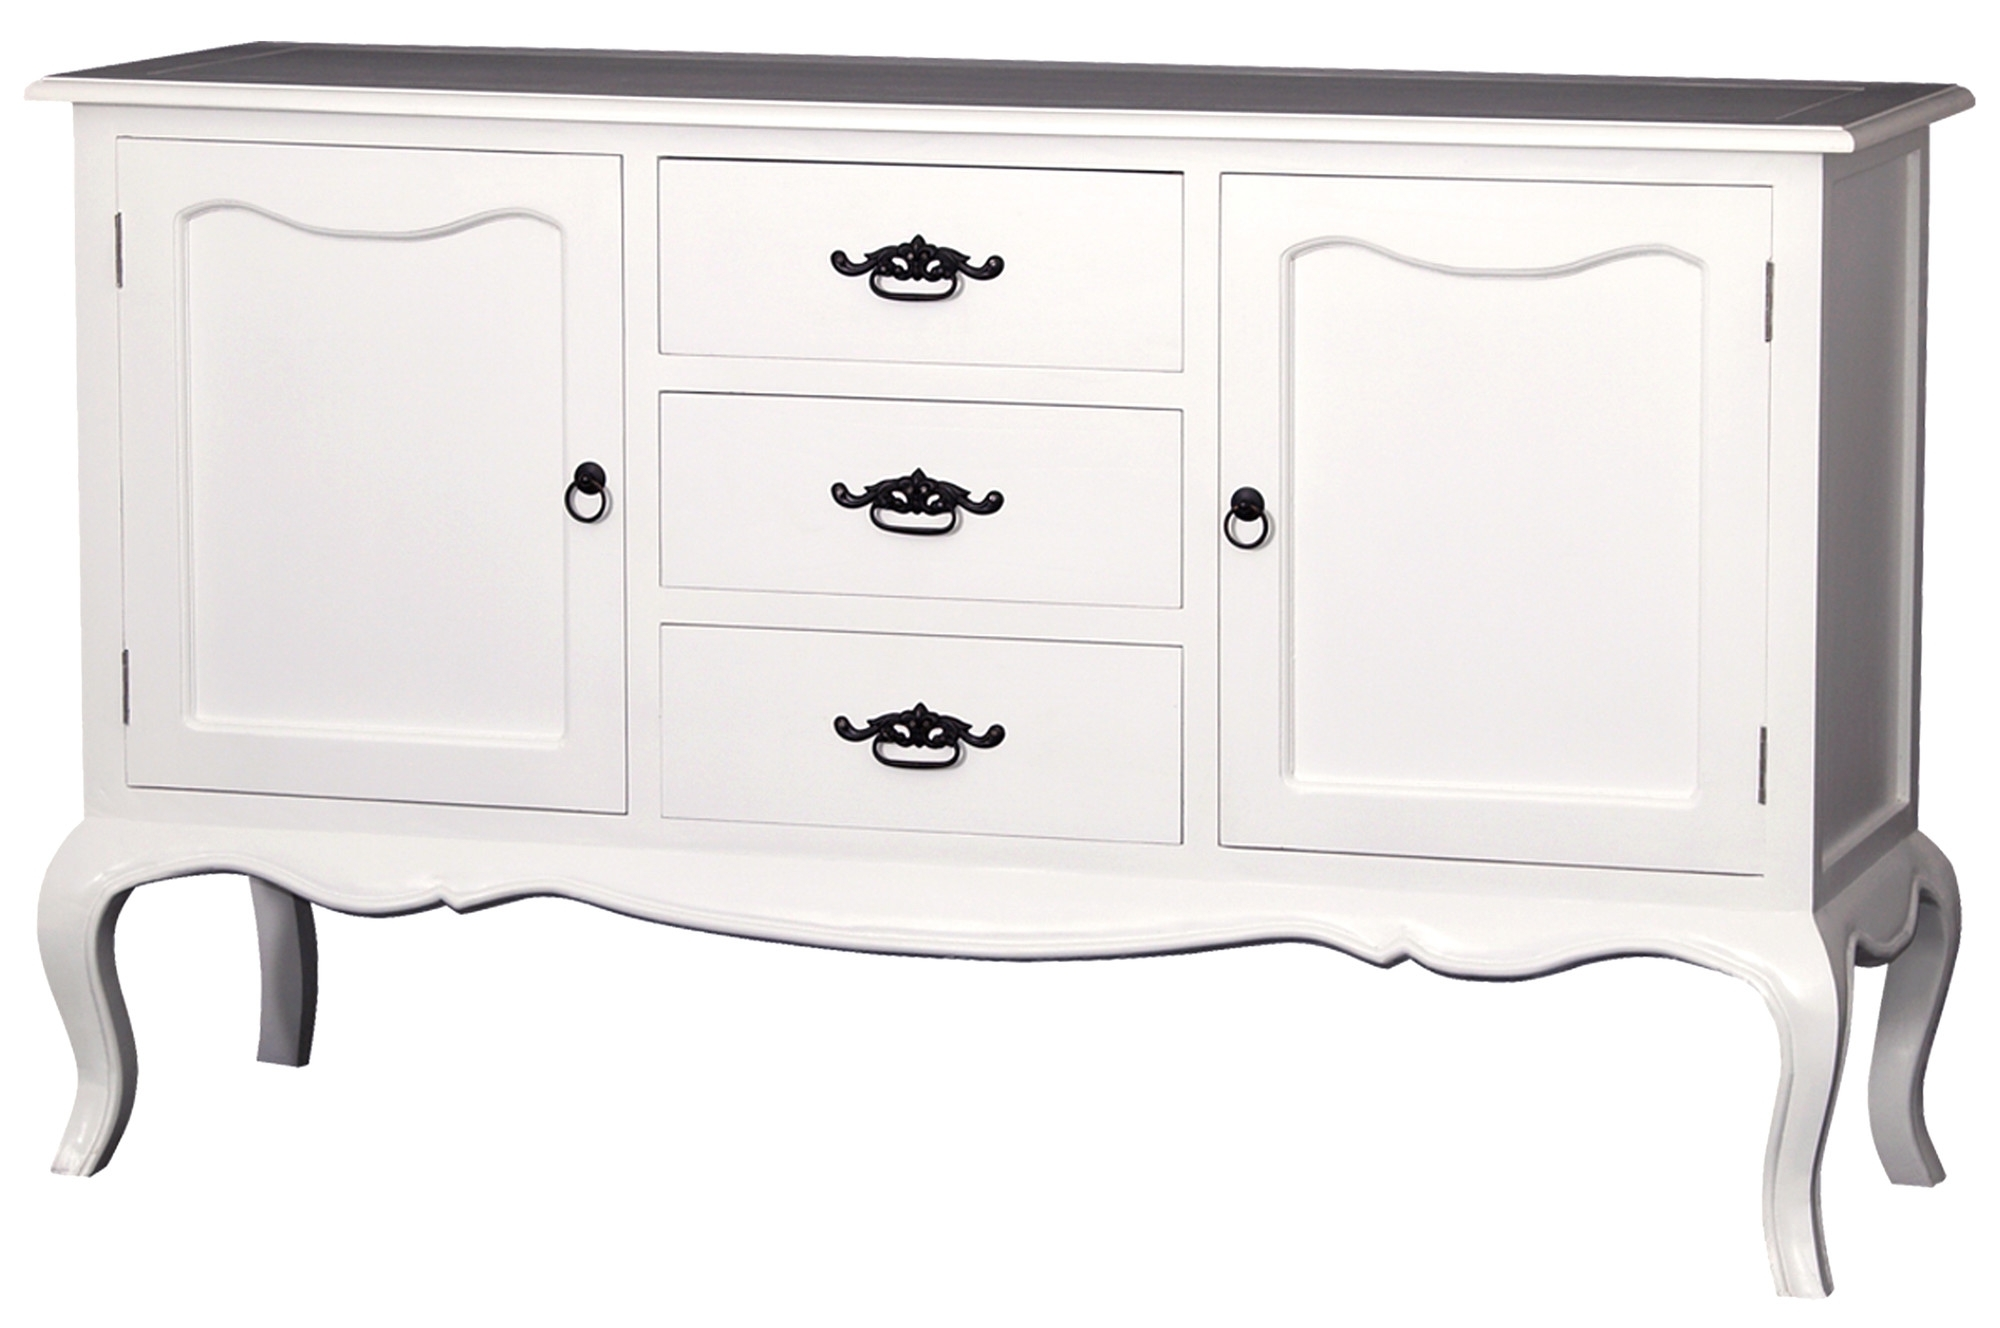 2 Door 3 Drawer French Sideboard | Temple & Webster Throughout Antique White Distressed 3 Drawer/2 Door Sideboards (Gallery 10 of 30)